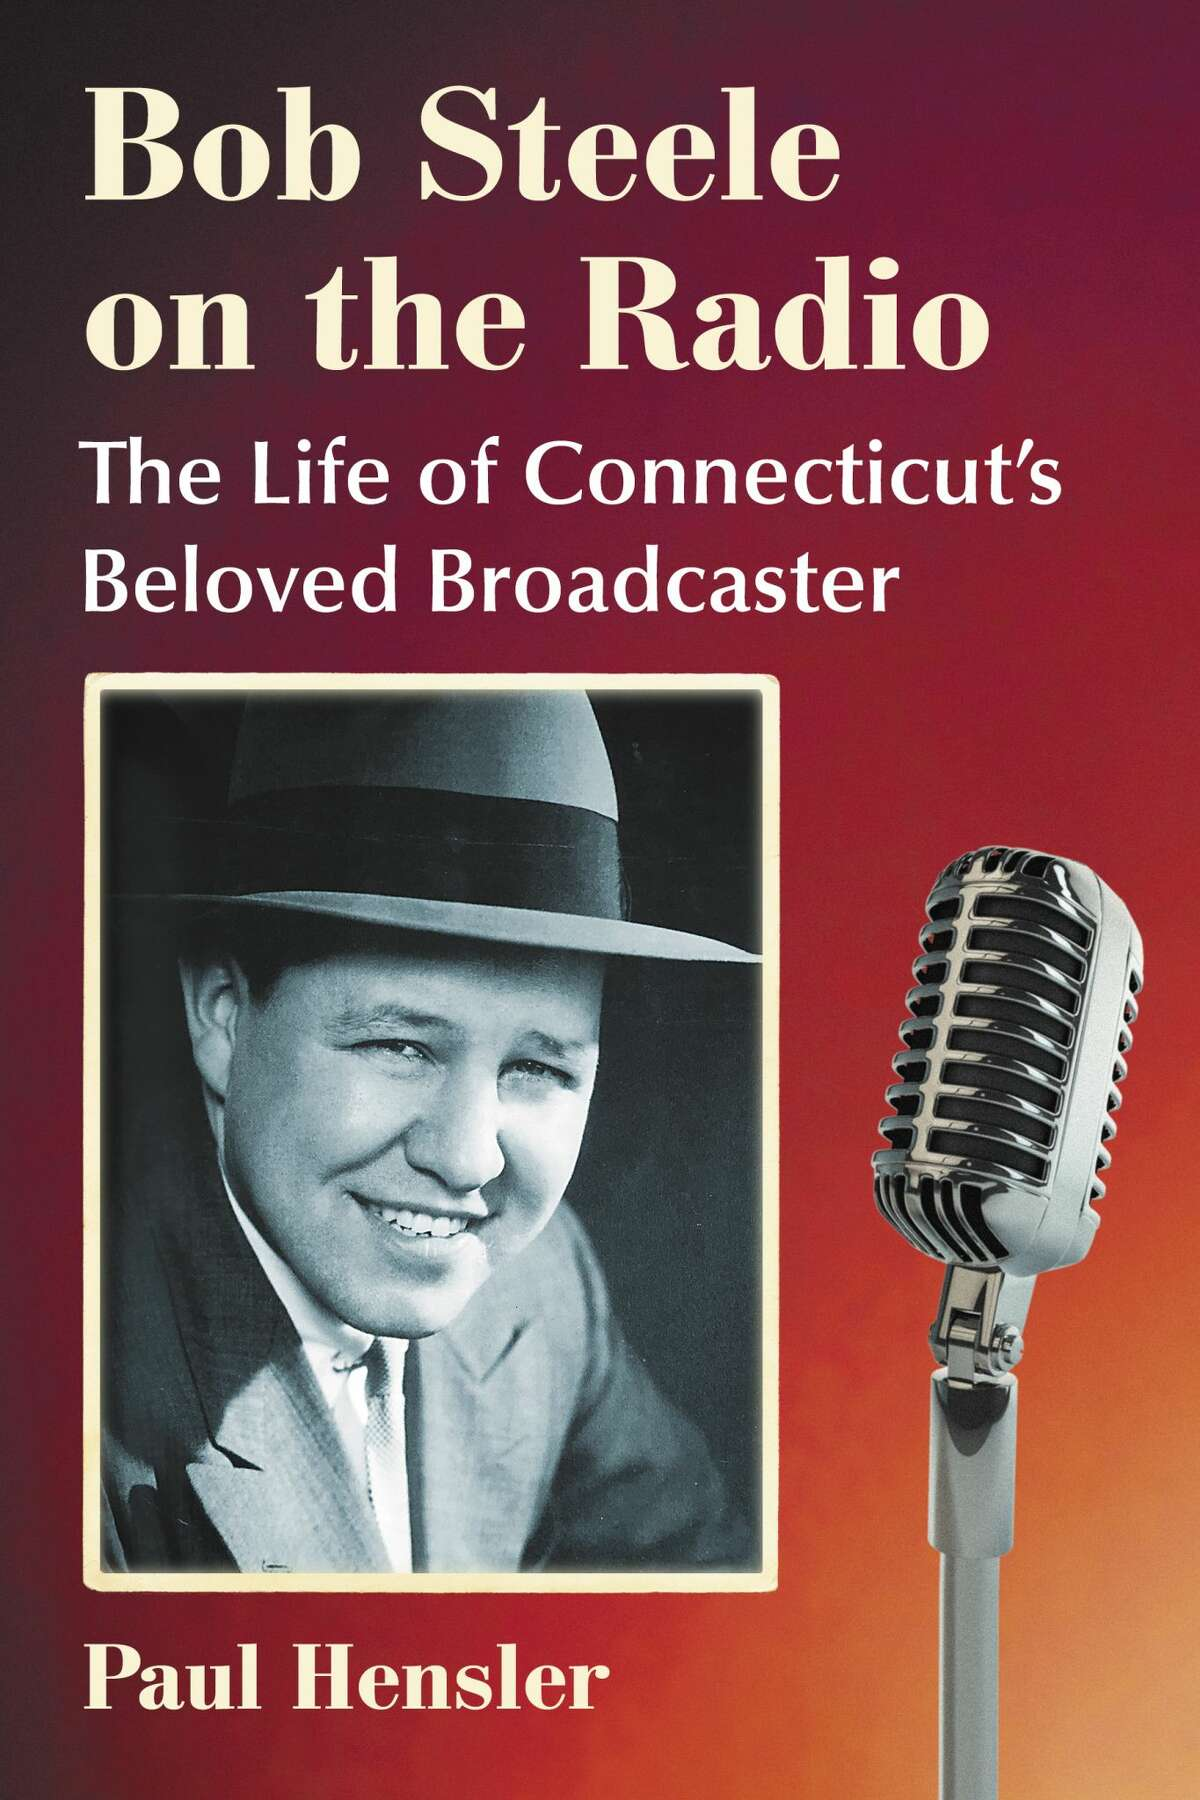 Author Paul Hensler will talk about CT broadcaster Bob Steele on Sept. 23.